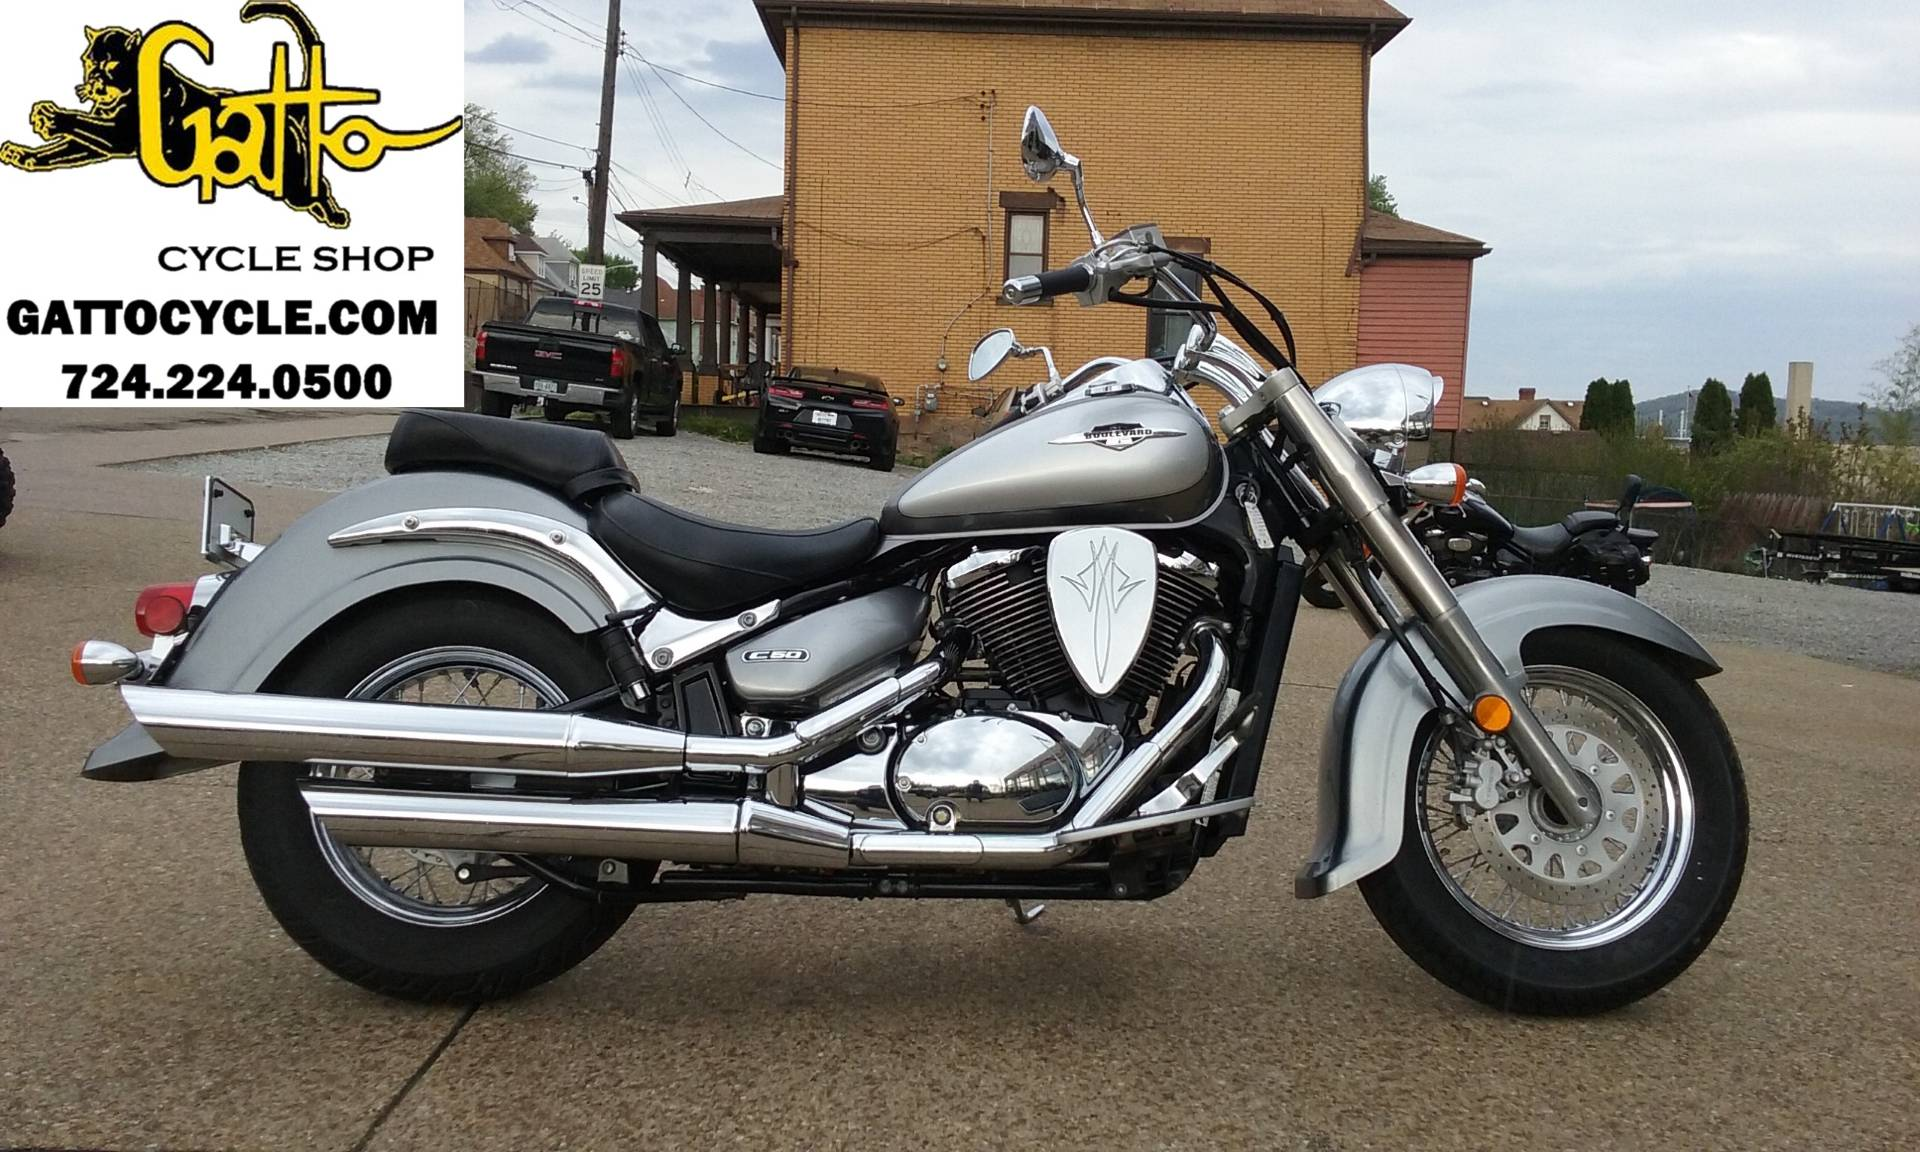 2006 Suzuki Boulevard C50 for sale 21964